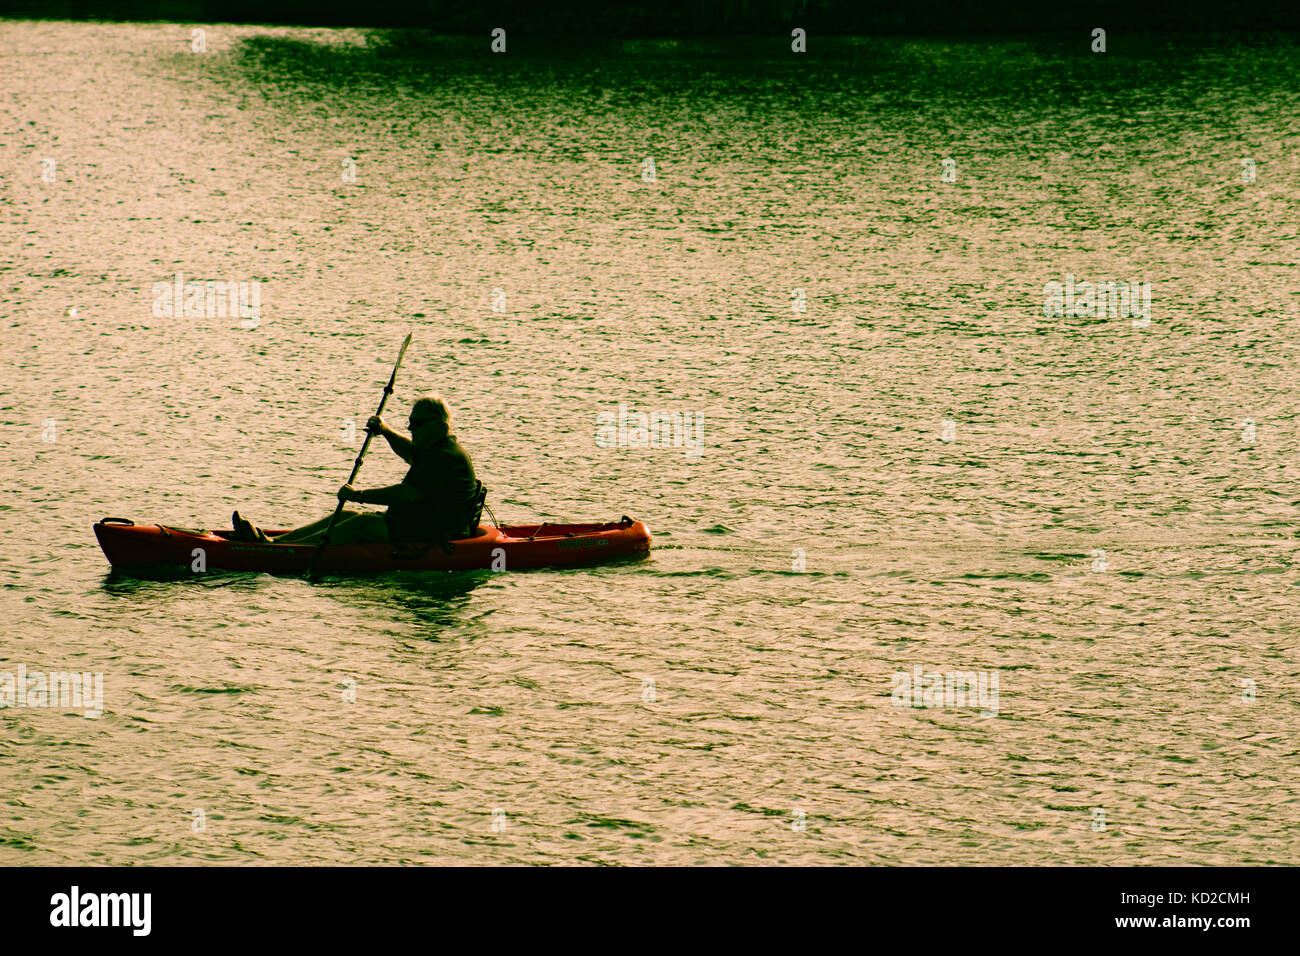 A man in a canoe - Stock Image